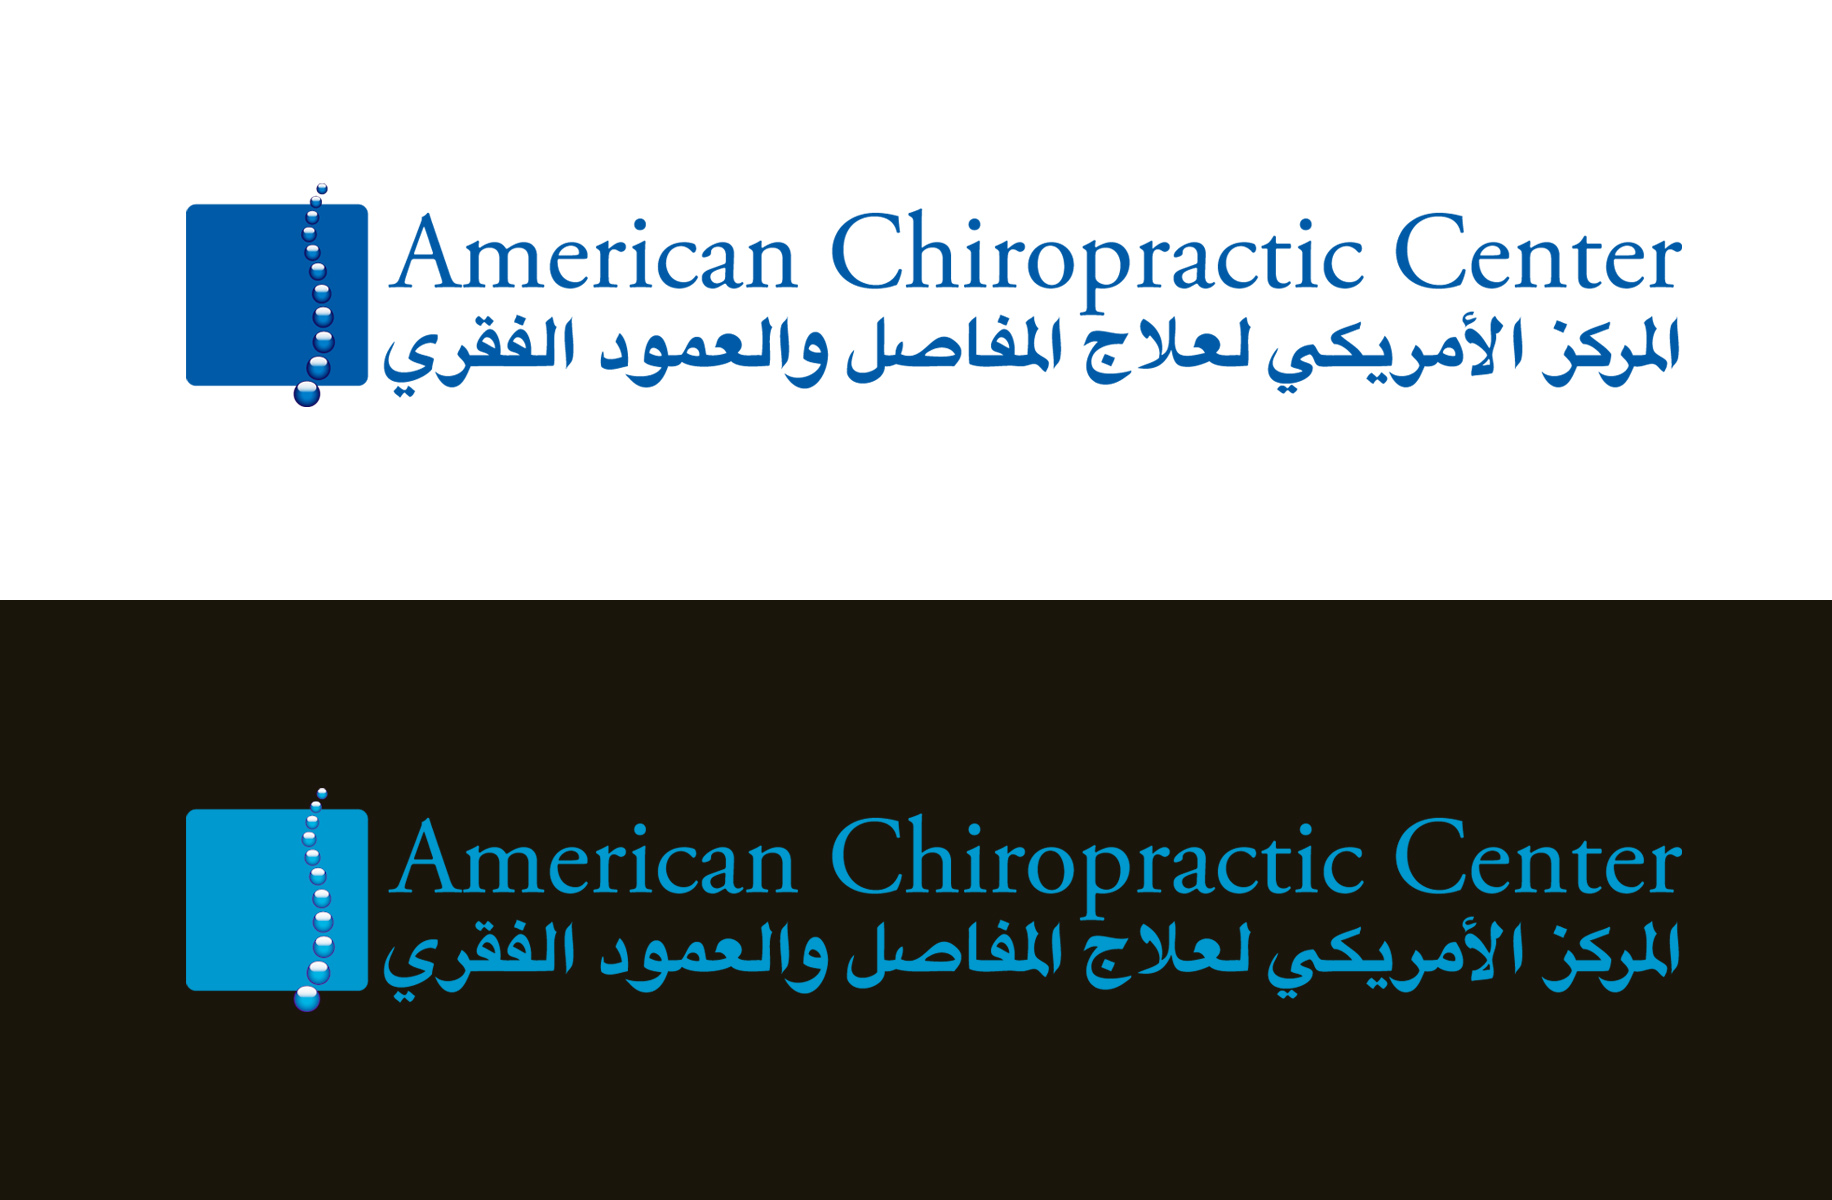 Logo Design by moidgreat - Entry No. 229 in the Logo Design Contest Logo Design for American Chiropractic Center.